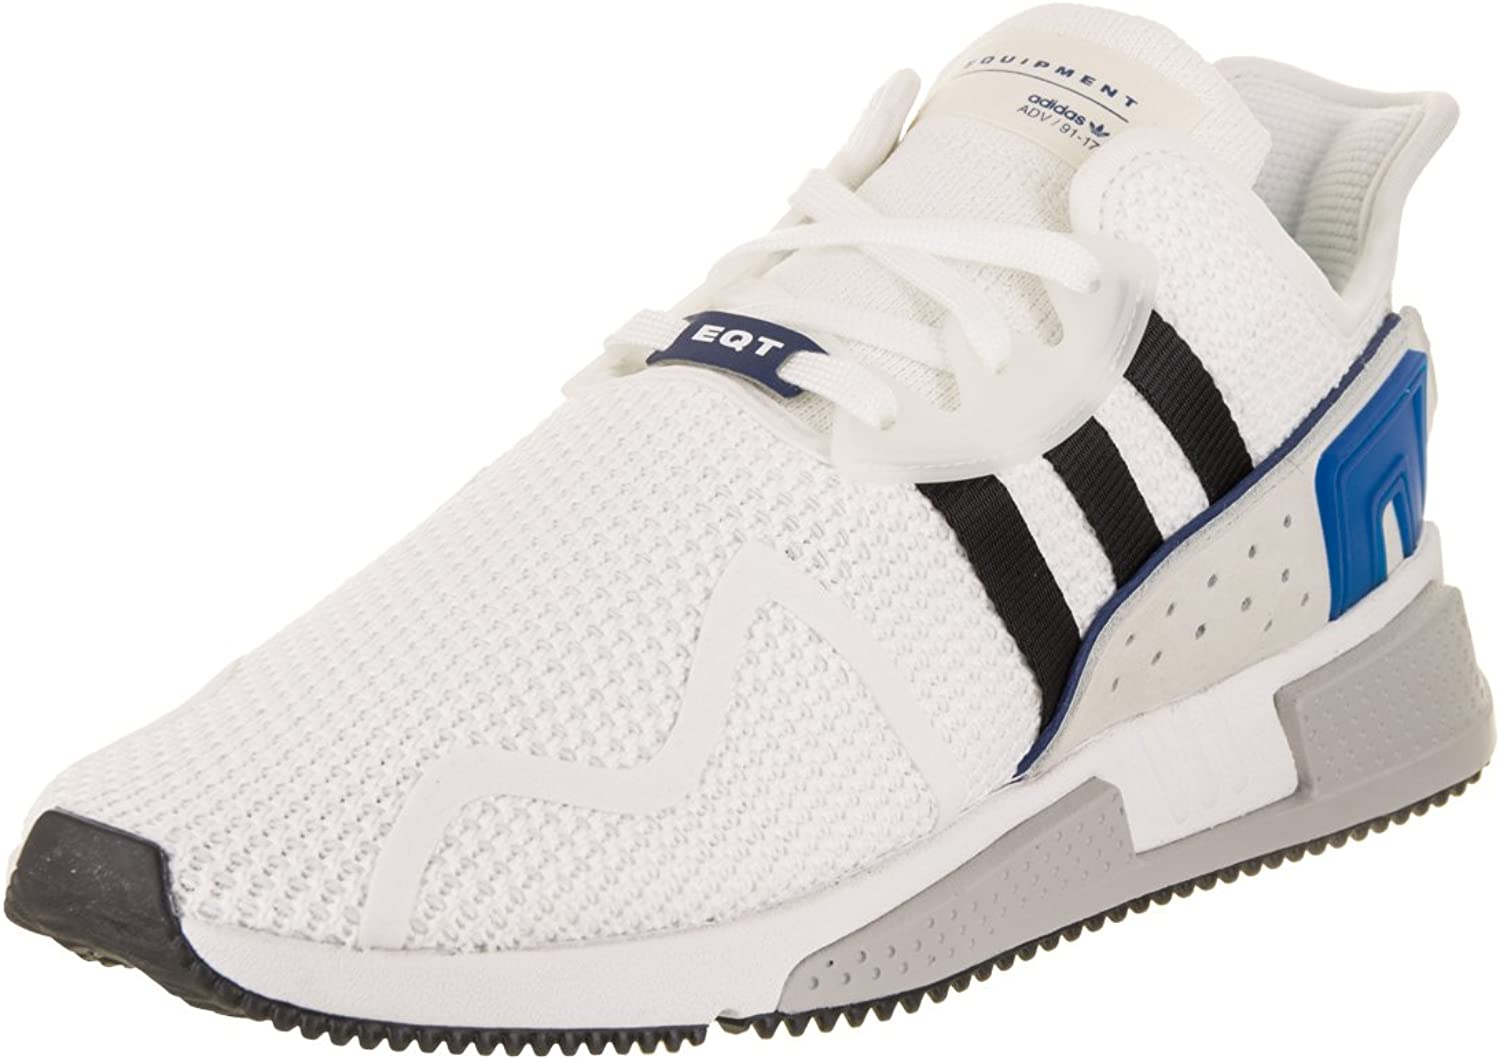 Adidas Originals Men's EQT Cushion ADV Running shoes (White, Black, Royal - Size 9.5)